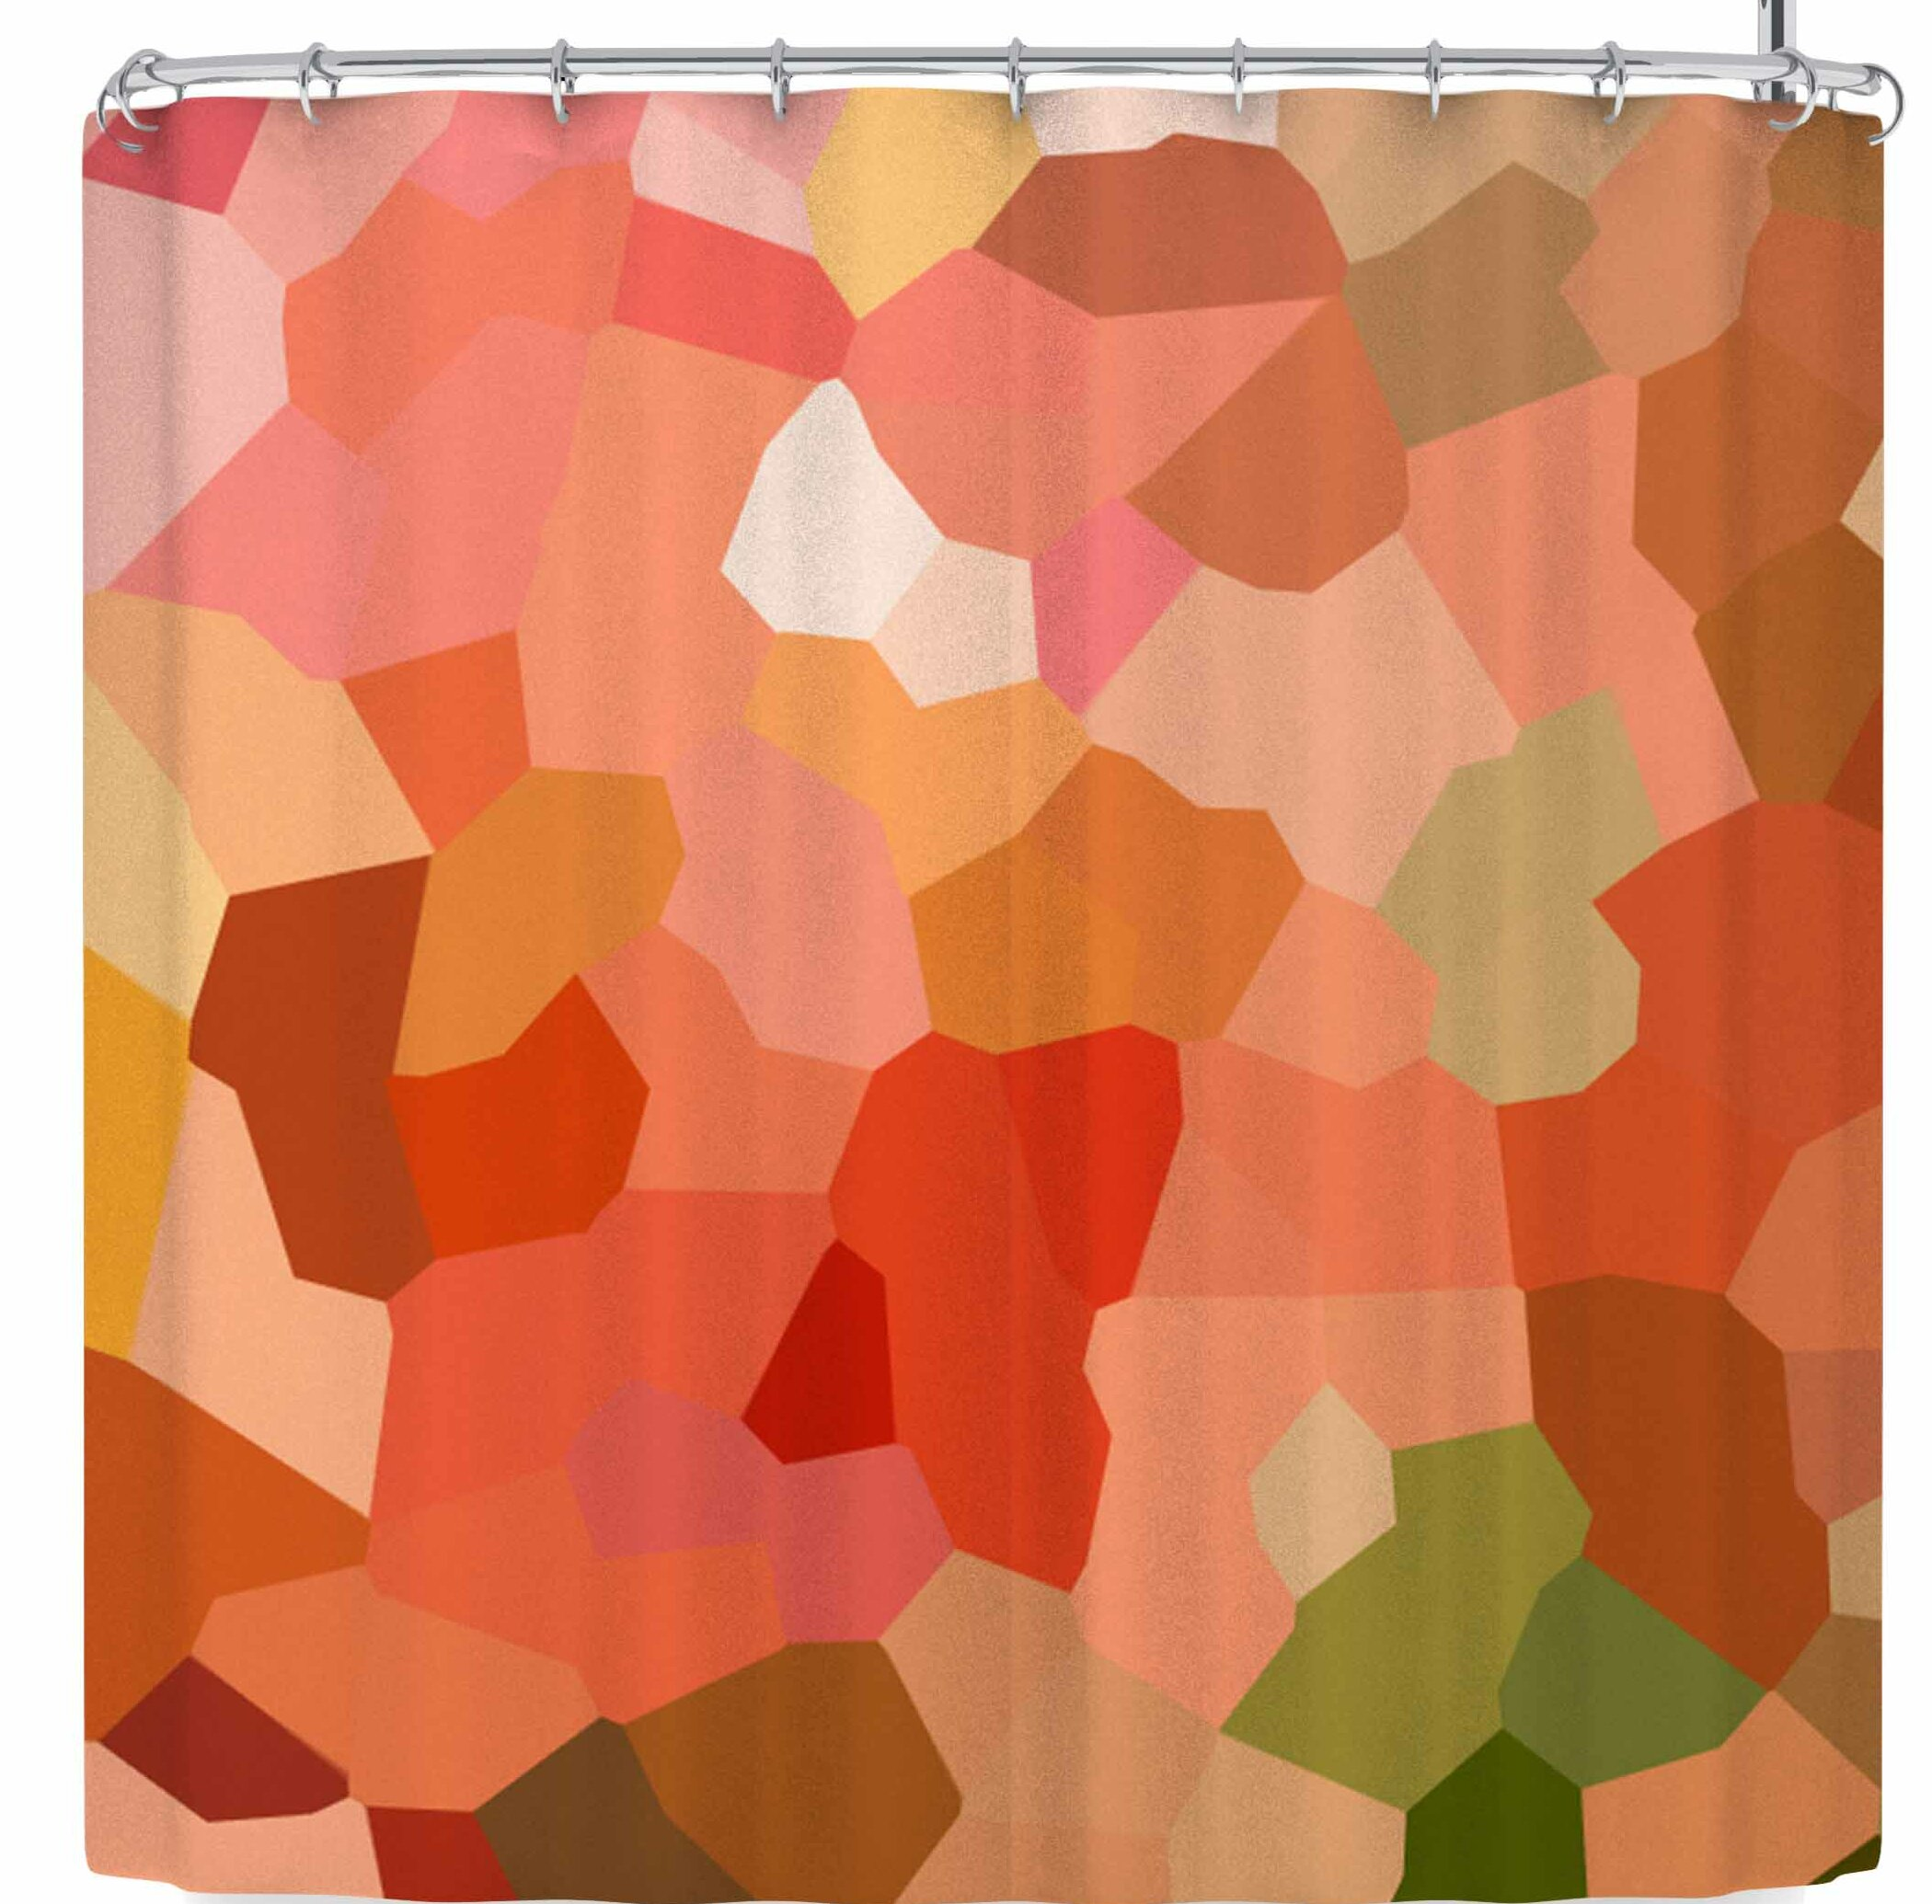 East Urban Home Rosie Brown Tumbled Pebbles Shower Curtain